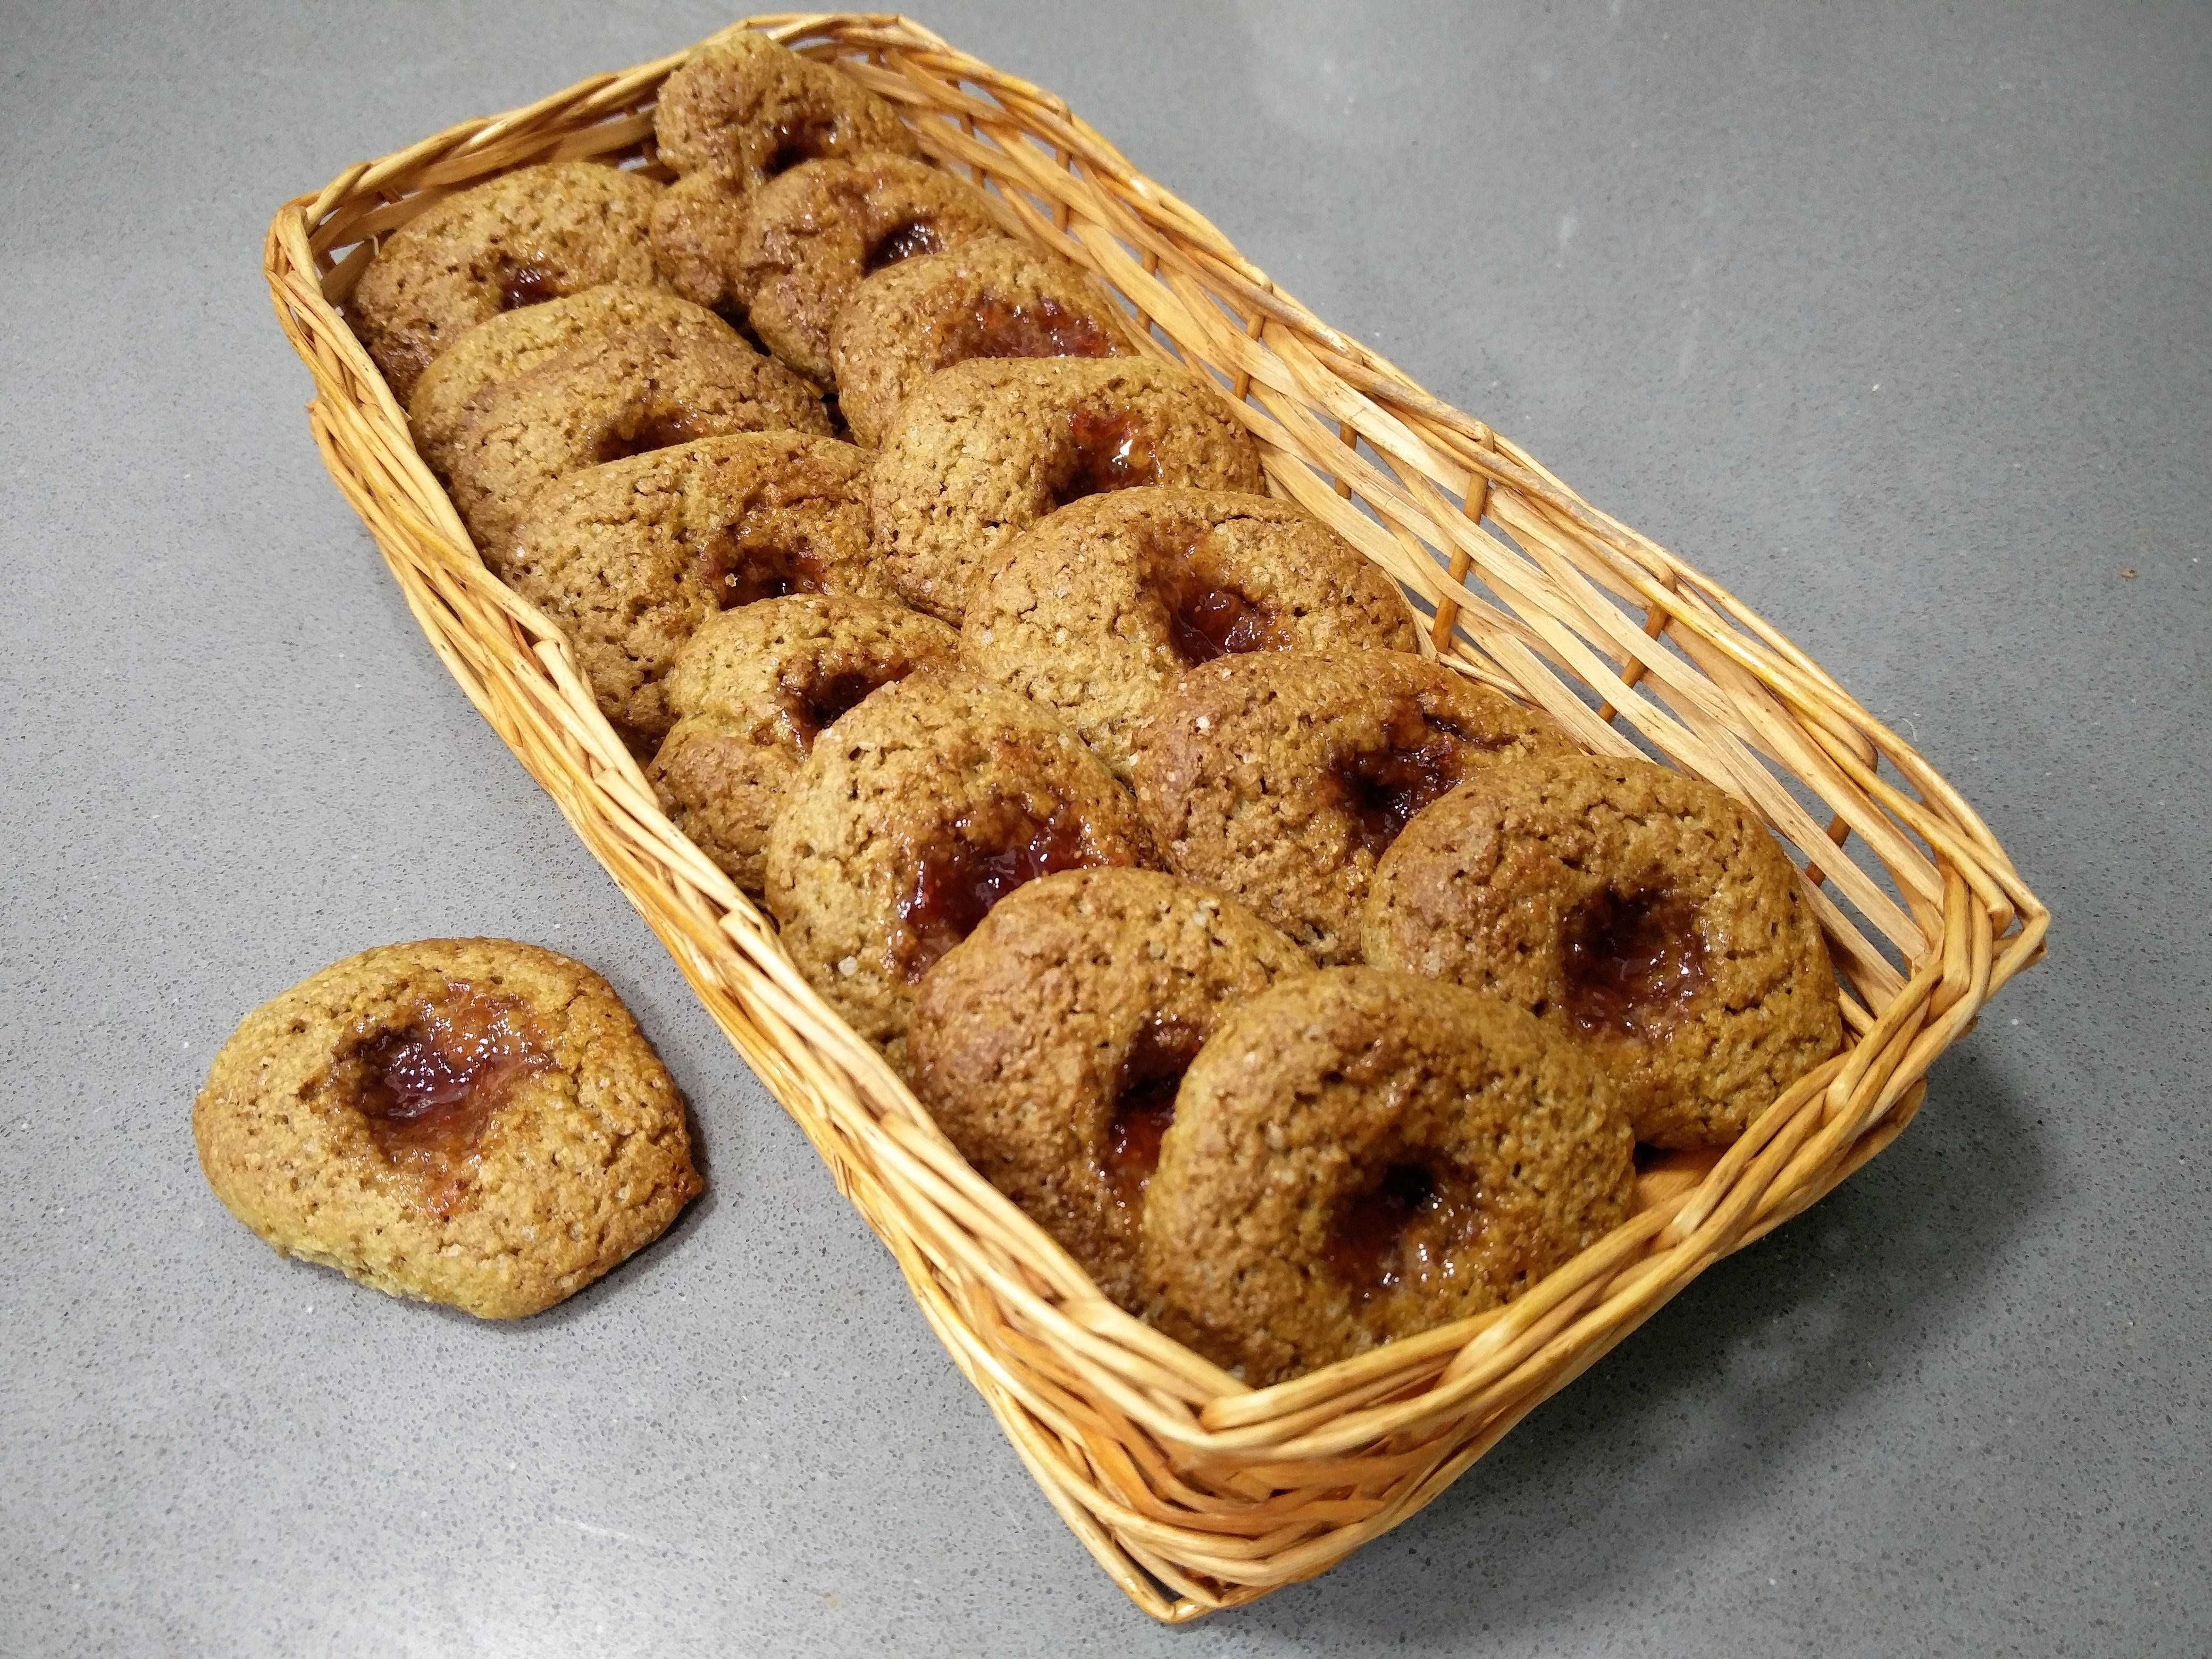 Galletas integrales con mermelada